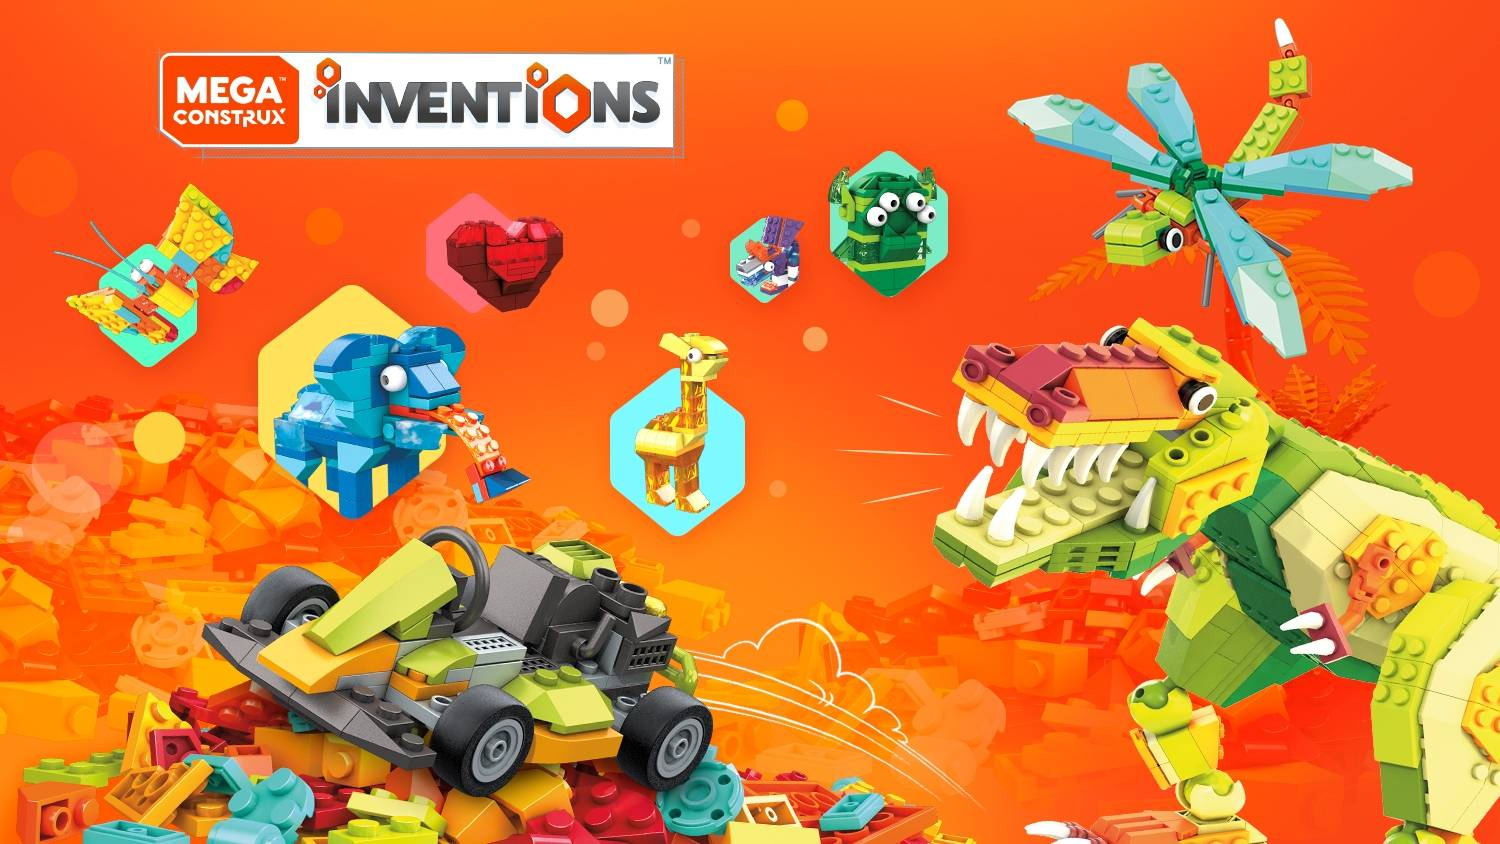 Image of: Mega Construx Inventions™: An all-new way to build!